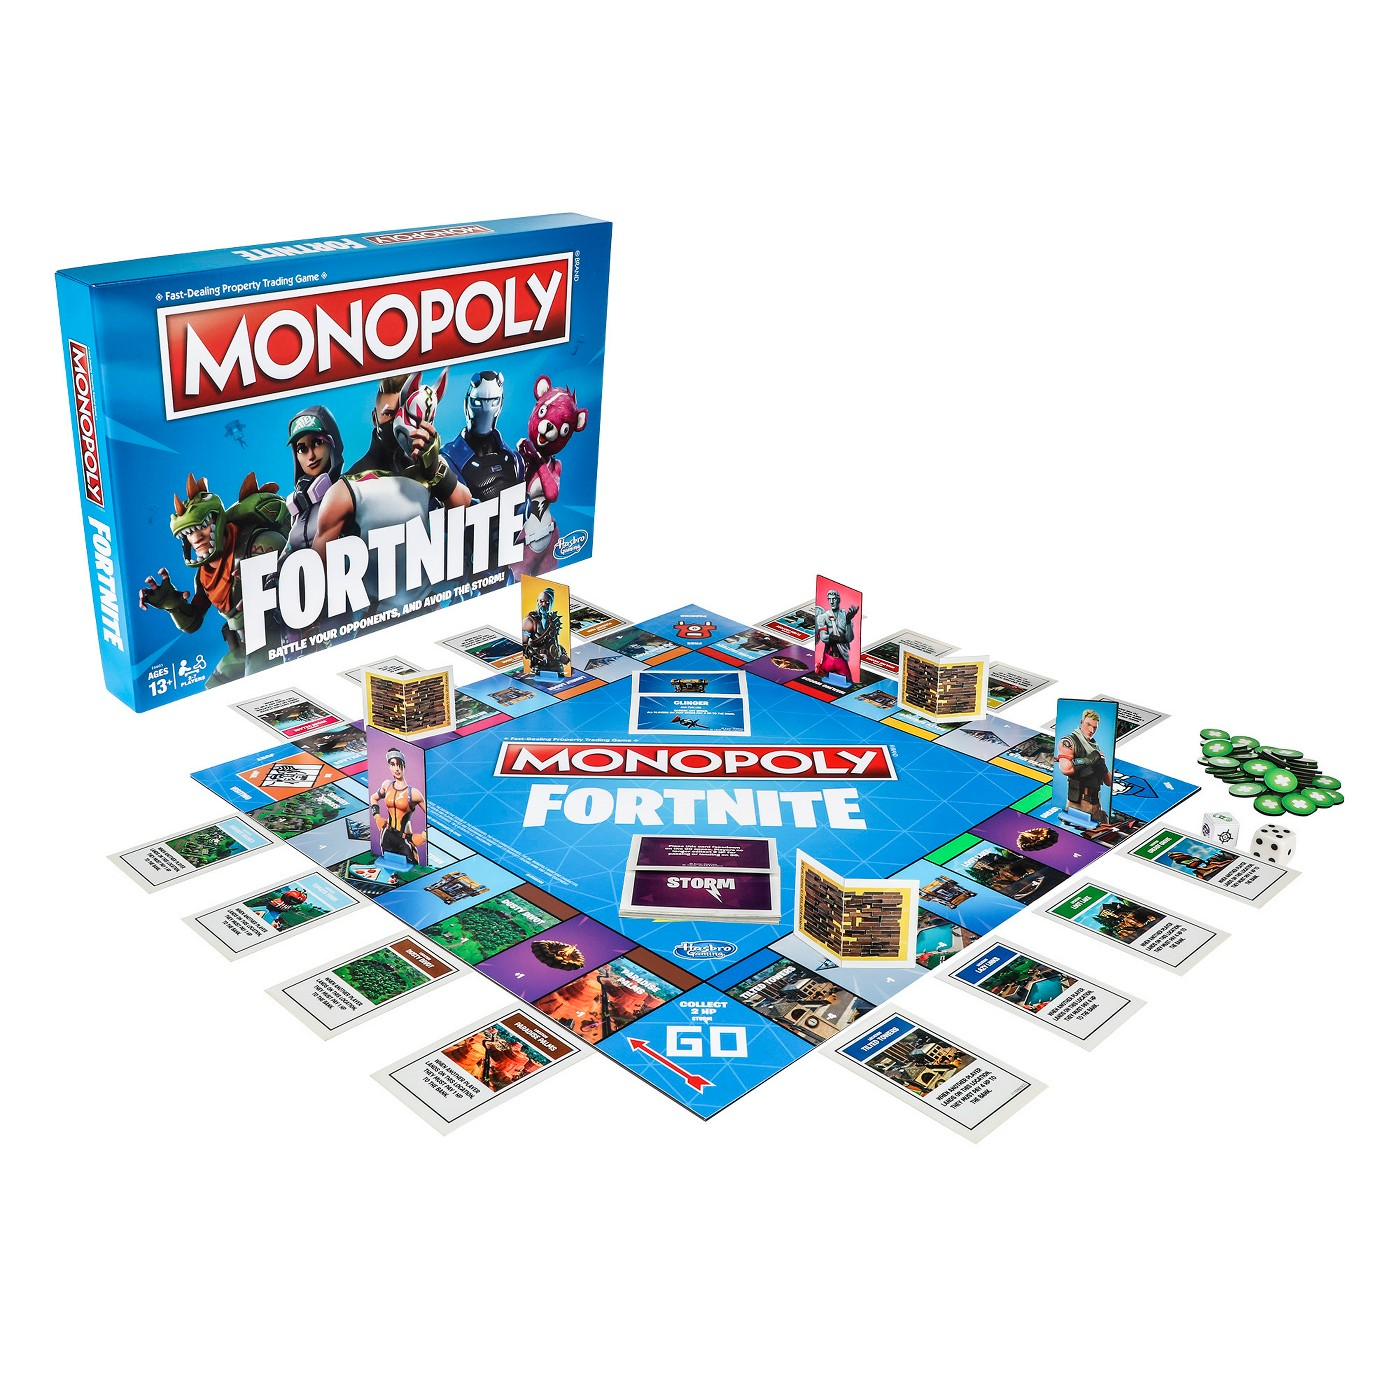 Cool gifts for tween boys (and girls): Fortnite edition Monopoly